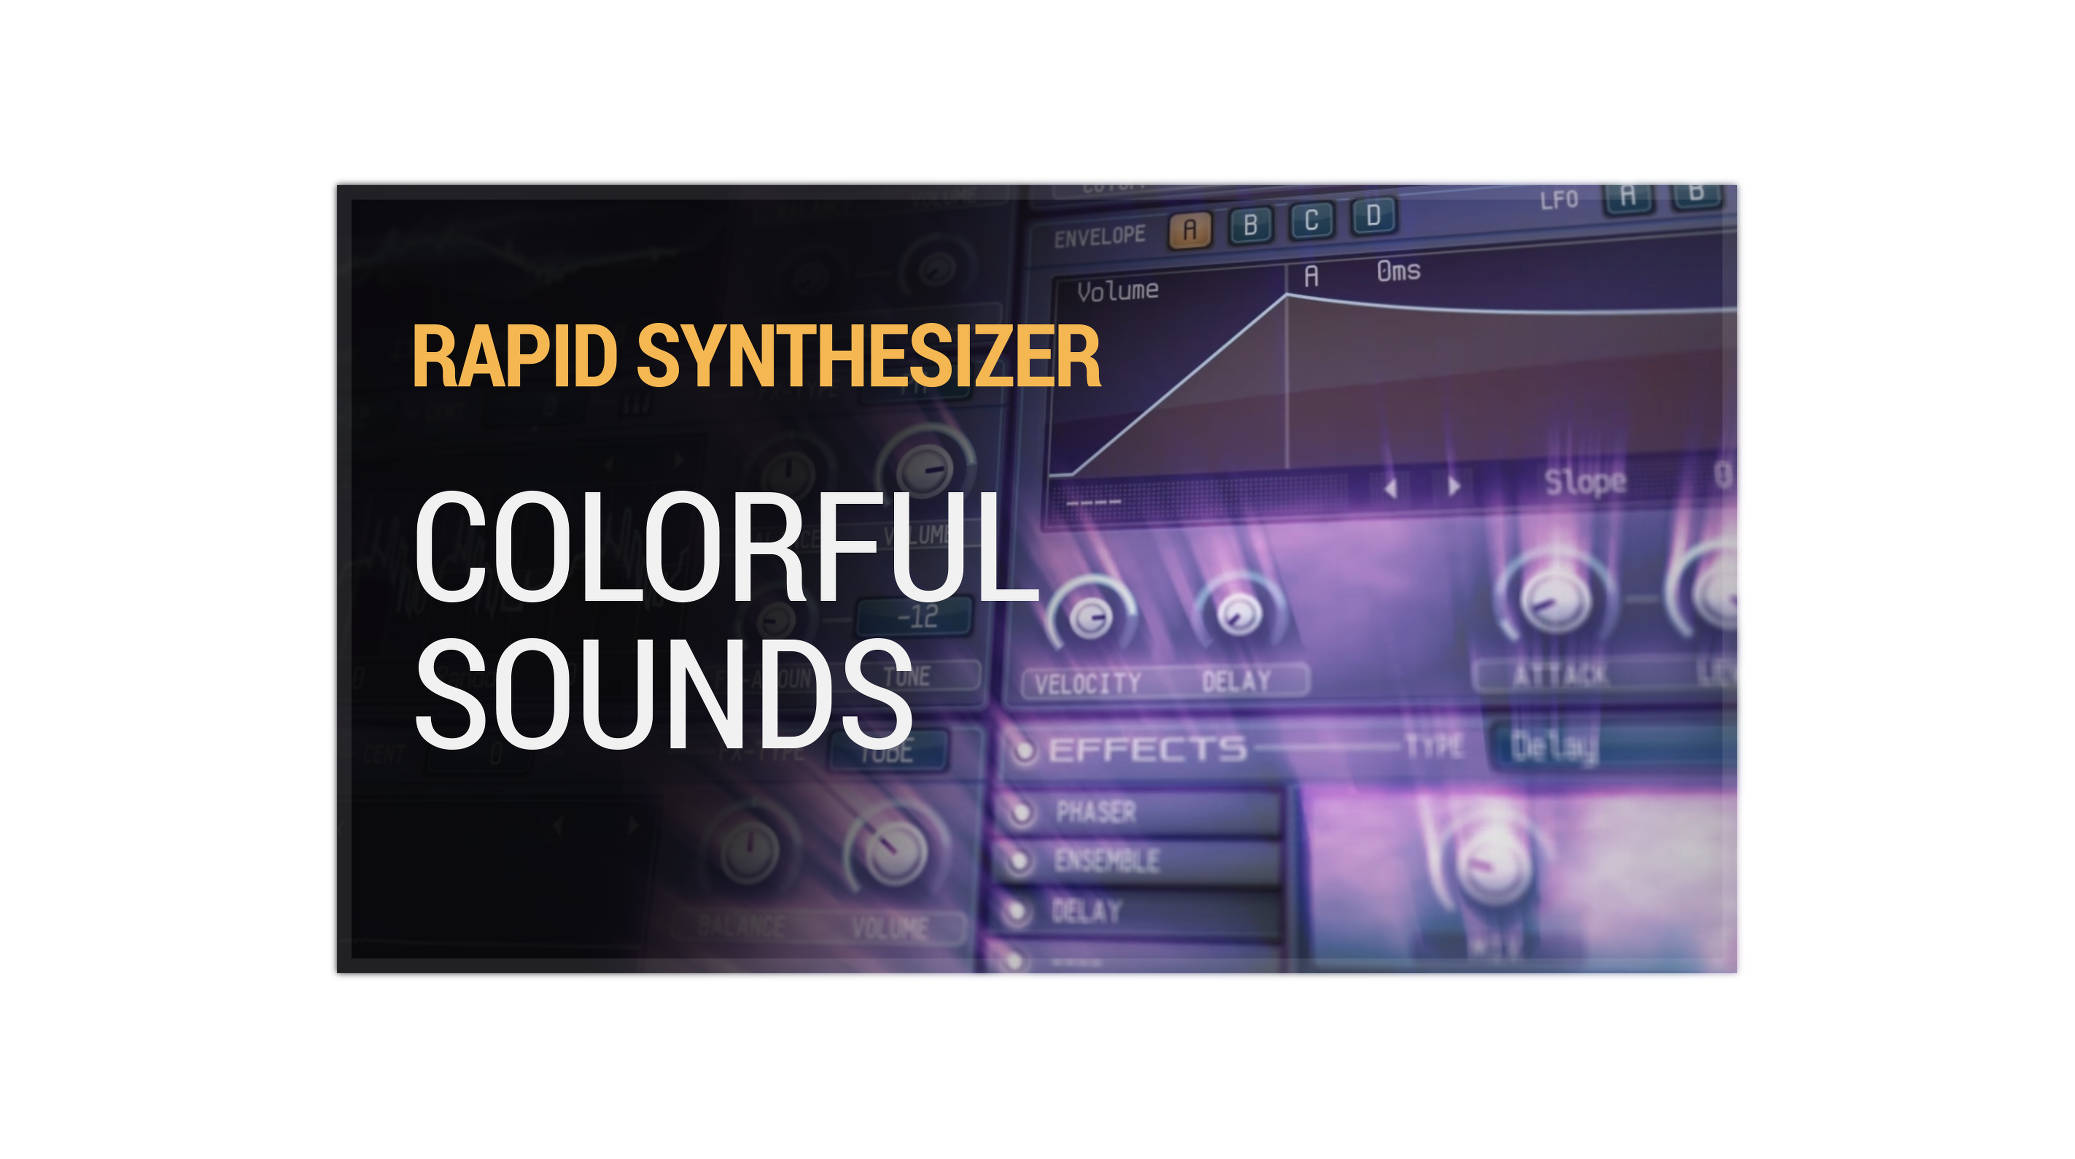 RAPID Synthesizer - Colorful Sounds